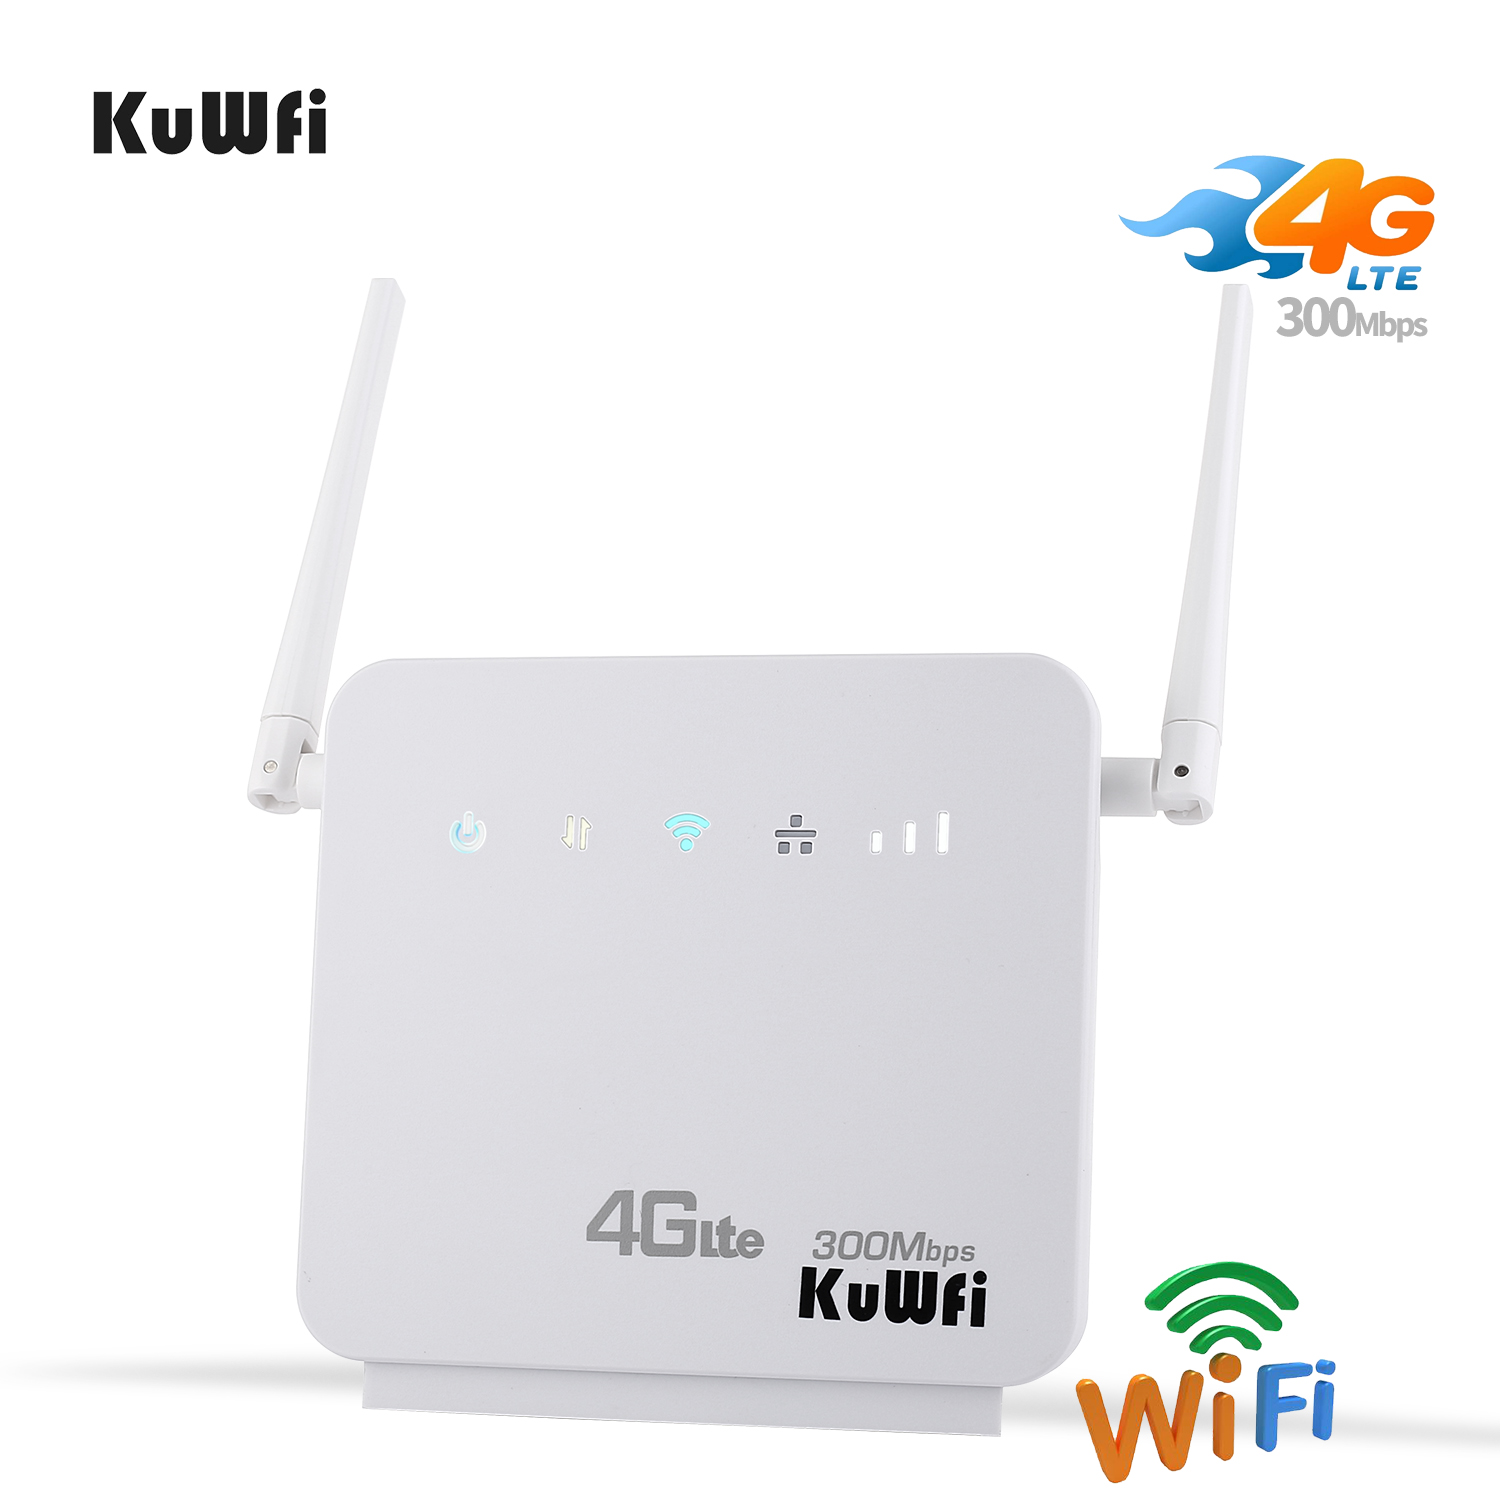 KuWFi Unlocked 300Mbps Wifi Routers 4G LTE CPE Mobile Router,Two LAN Port Support SIM Card And Europe/Asia/Middle East/Africa